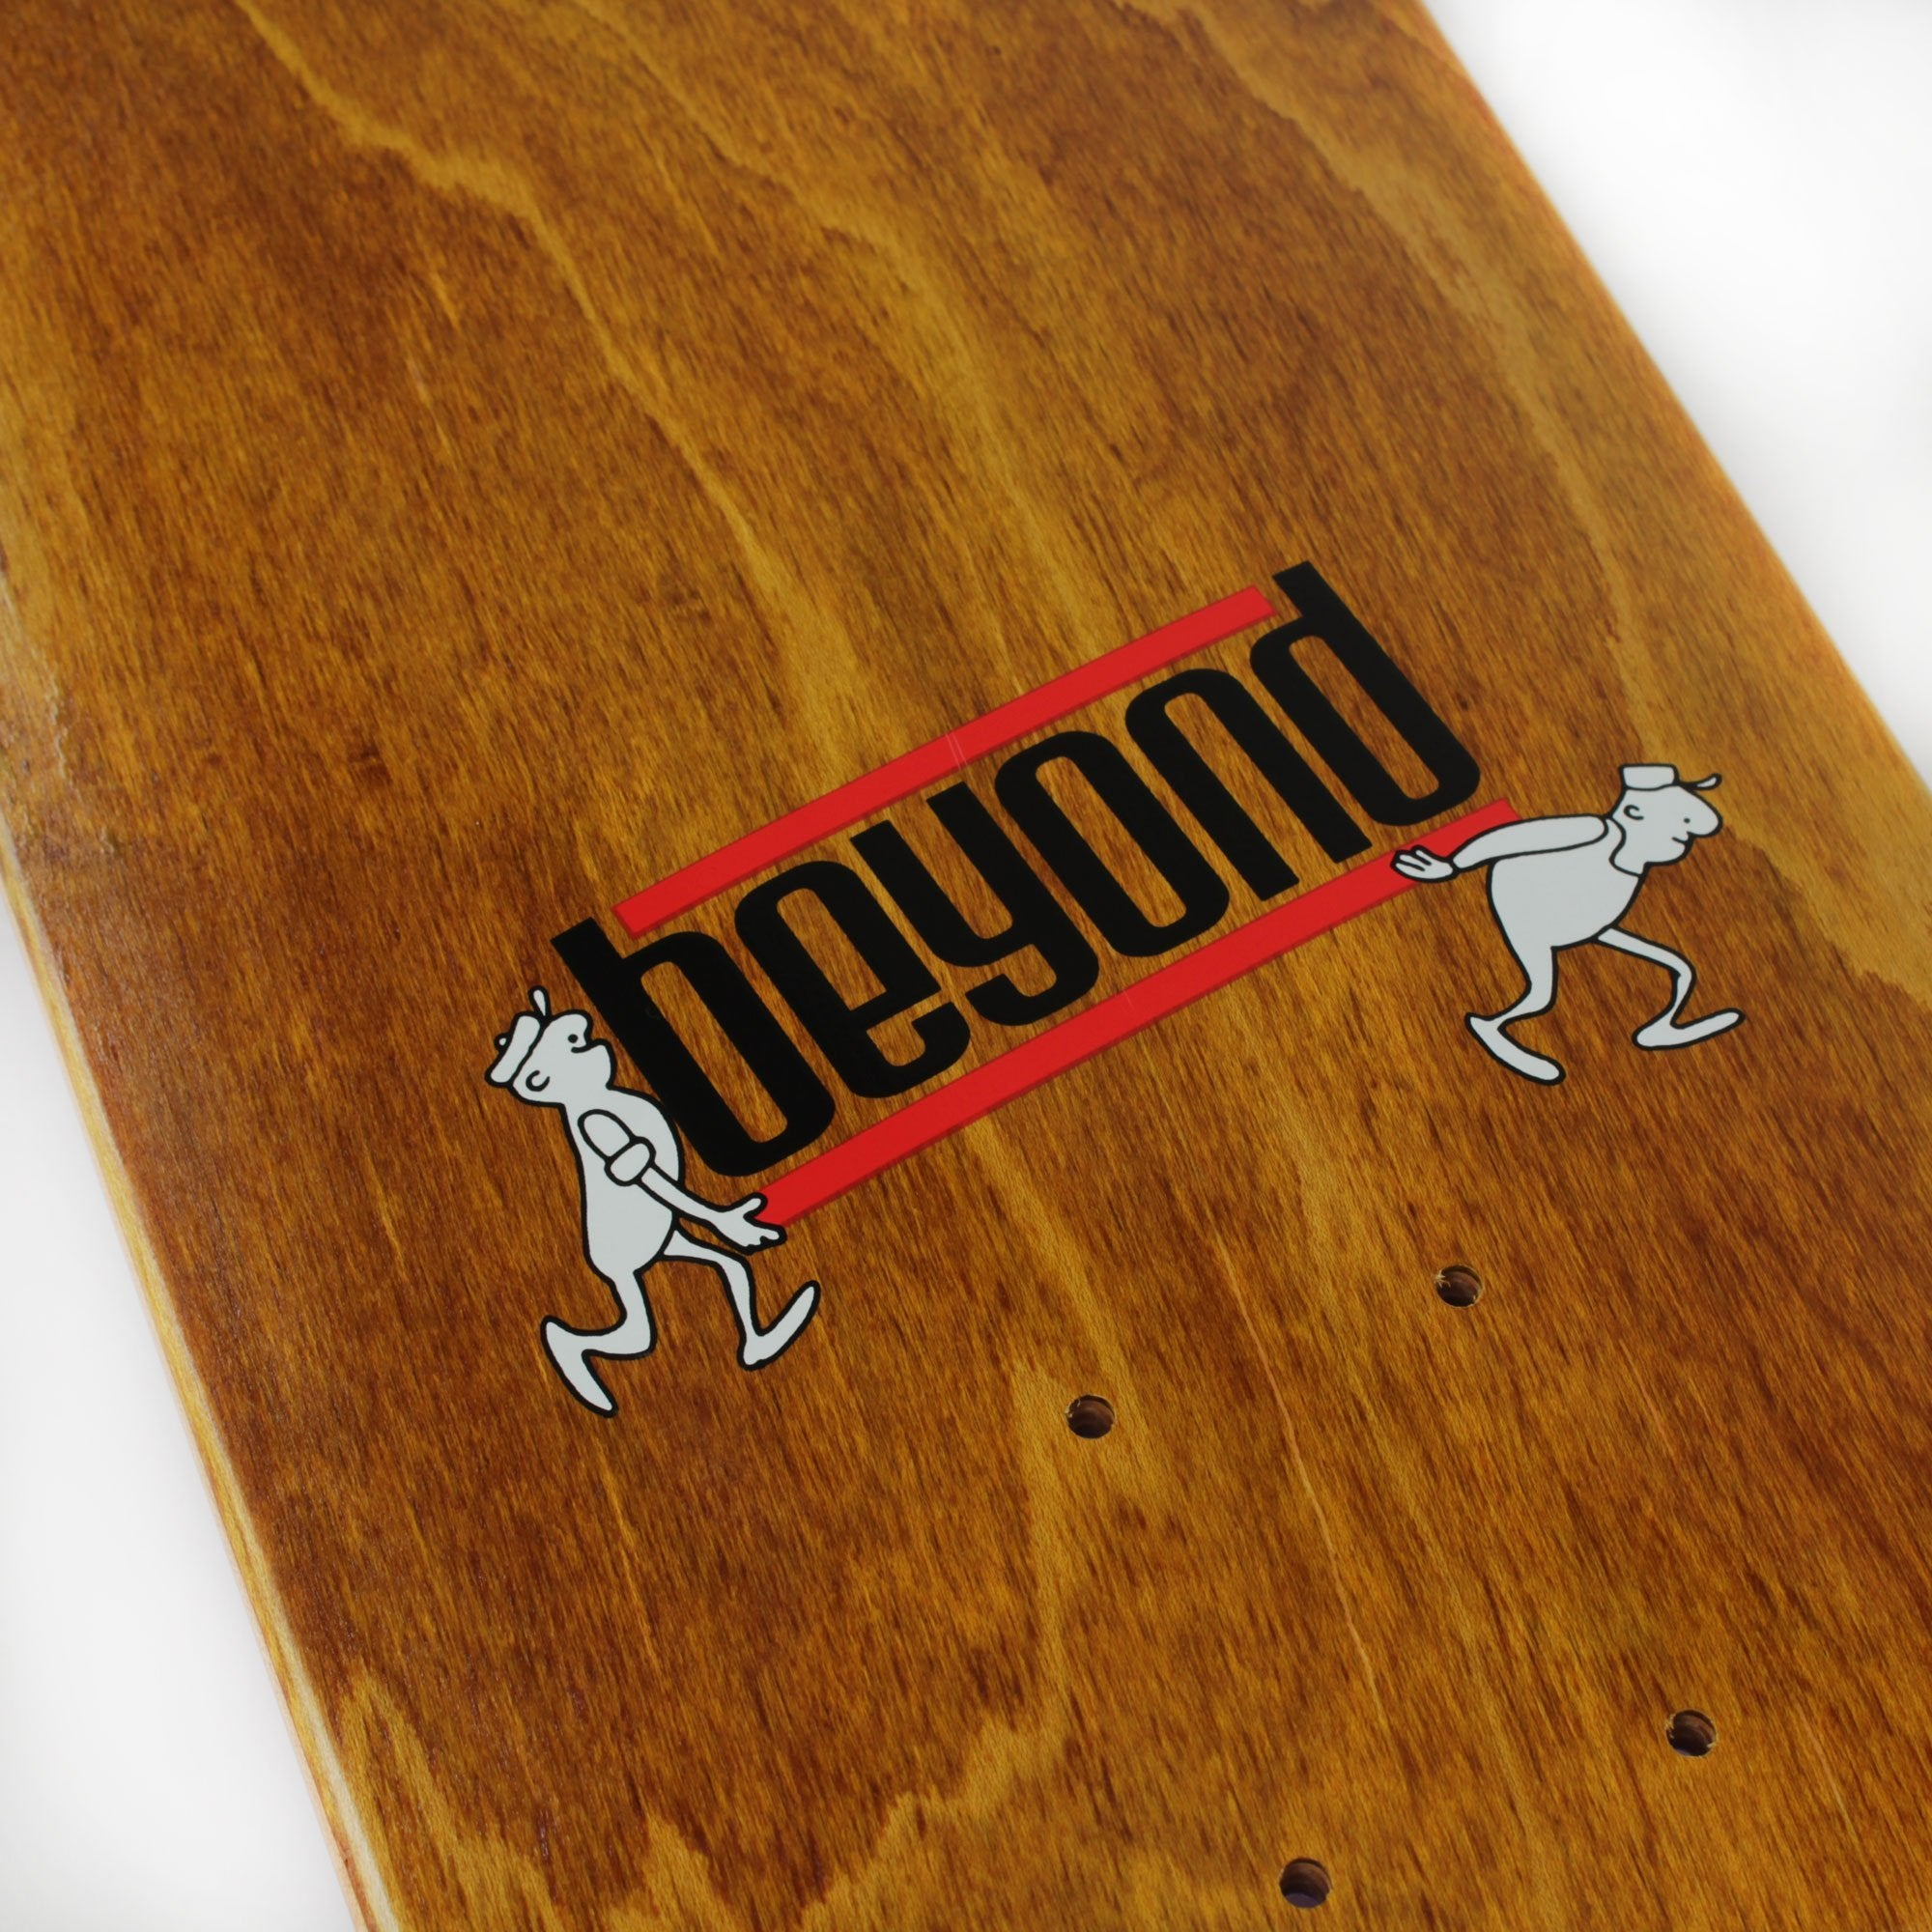 Beyond Moving Men Deck Product Photo #4